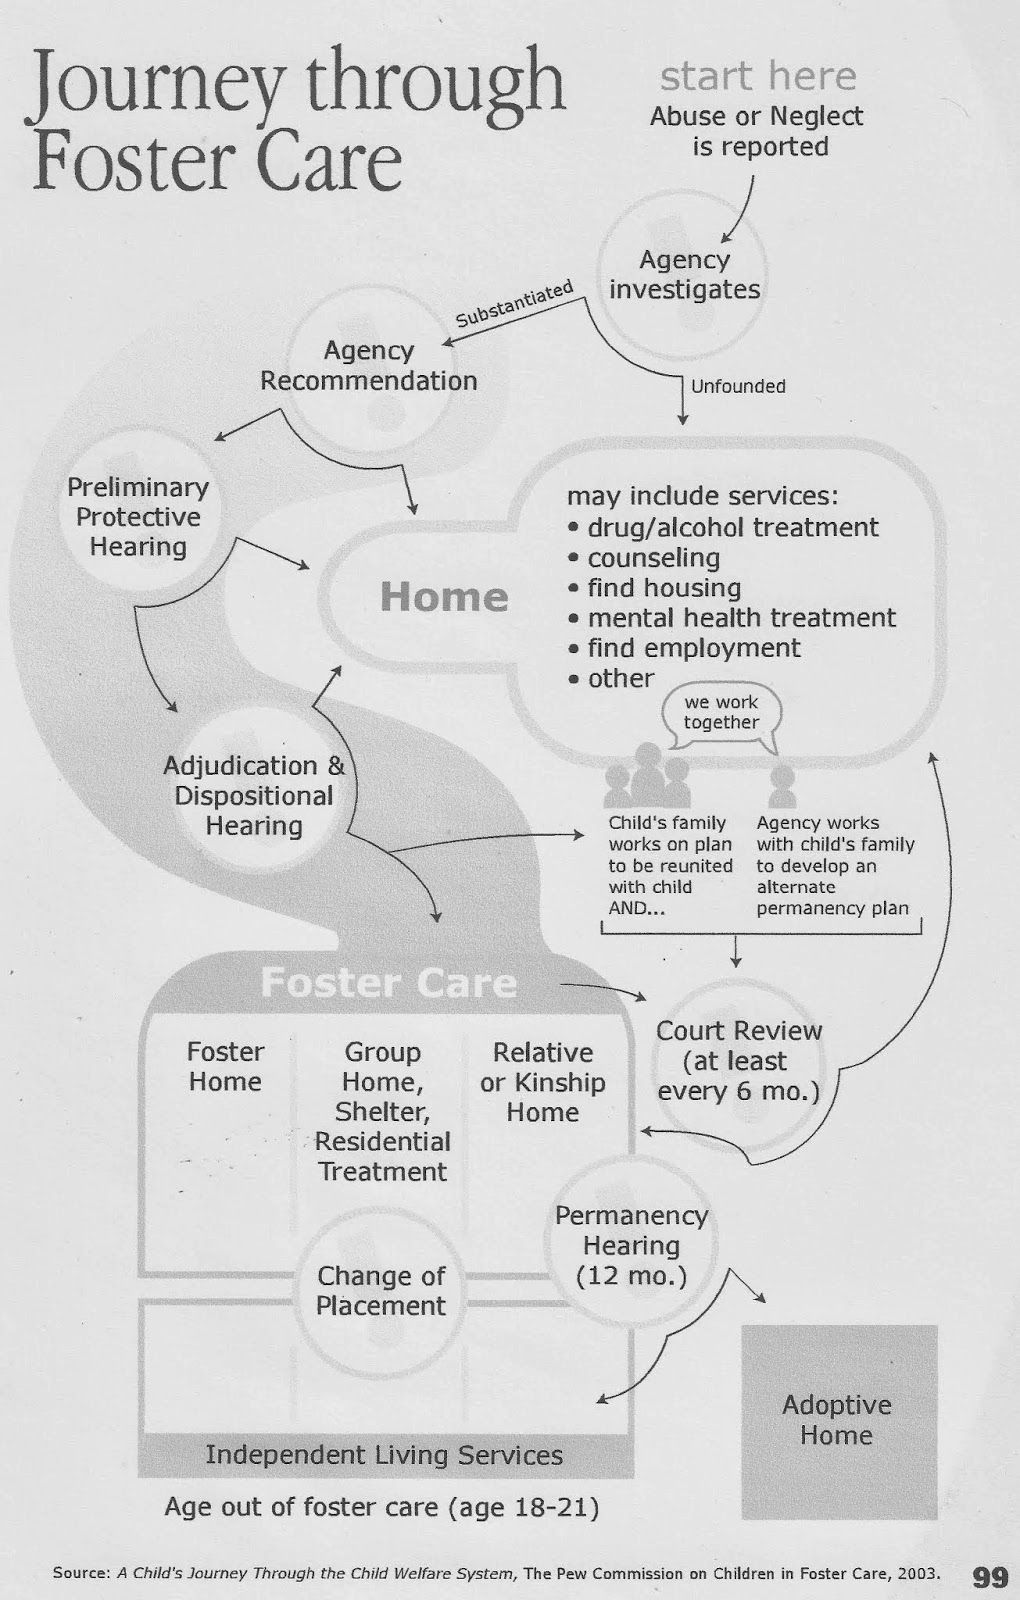 Journey through foster care. Easy to see how this